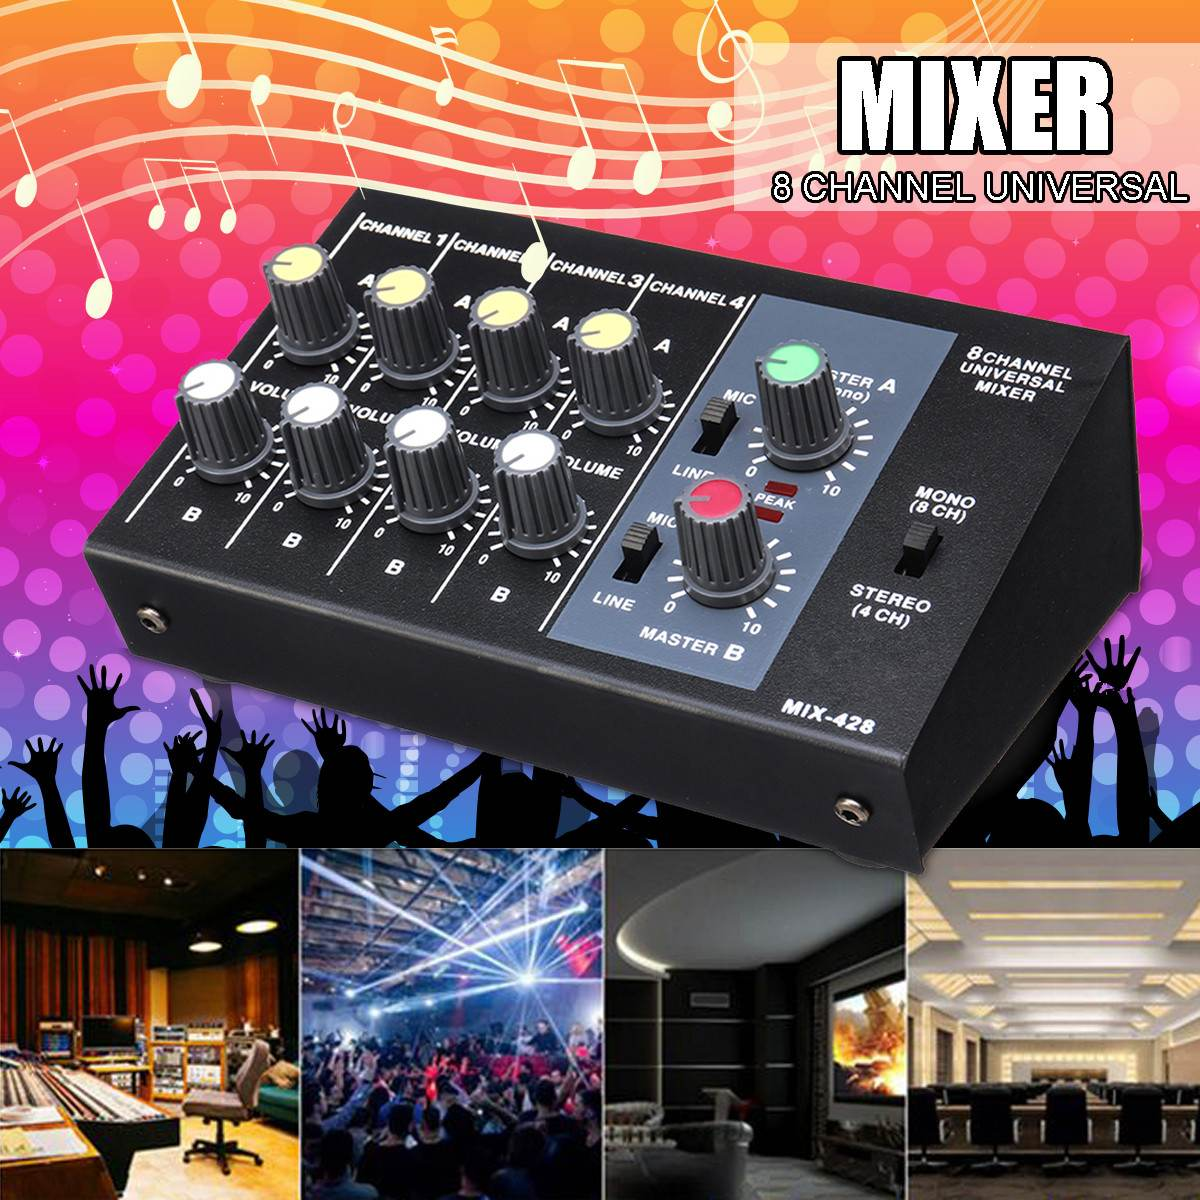 5W 48V Multi-Channel Digital Mixing Console Karaoke Universal Mixer Console Mono/Stereo Microphone Mixer Console Adjusting Panel